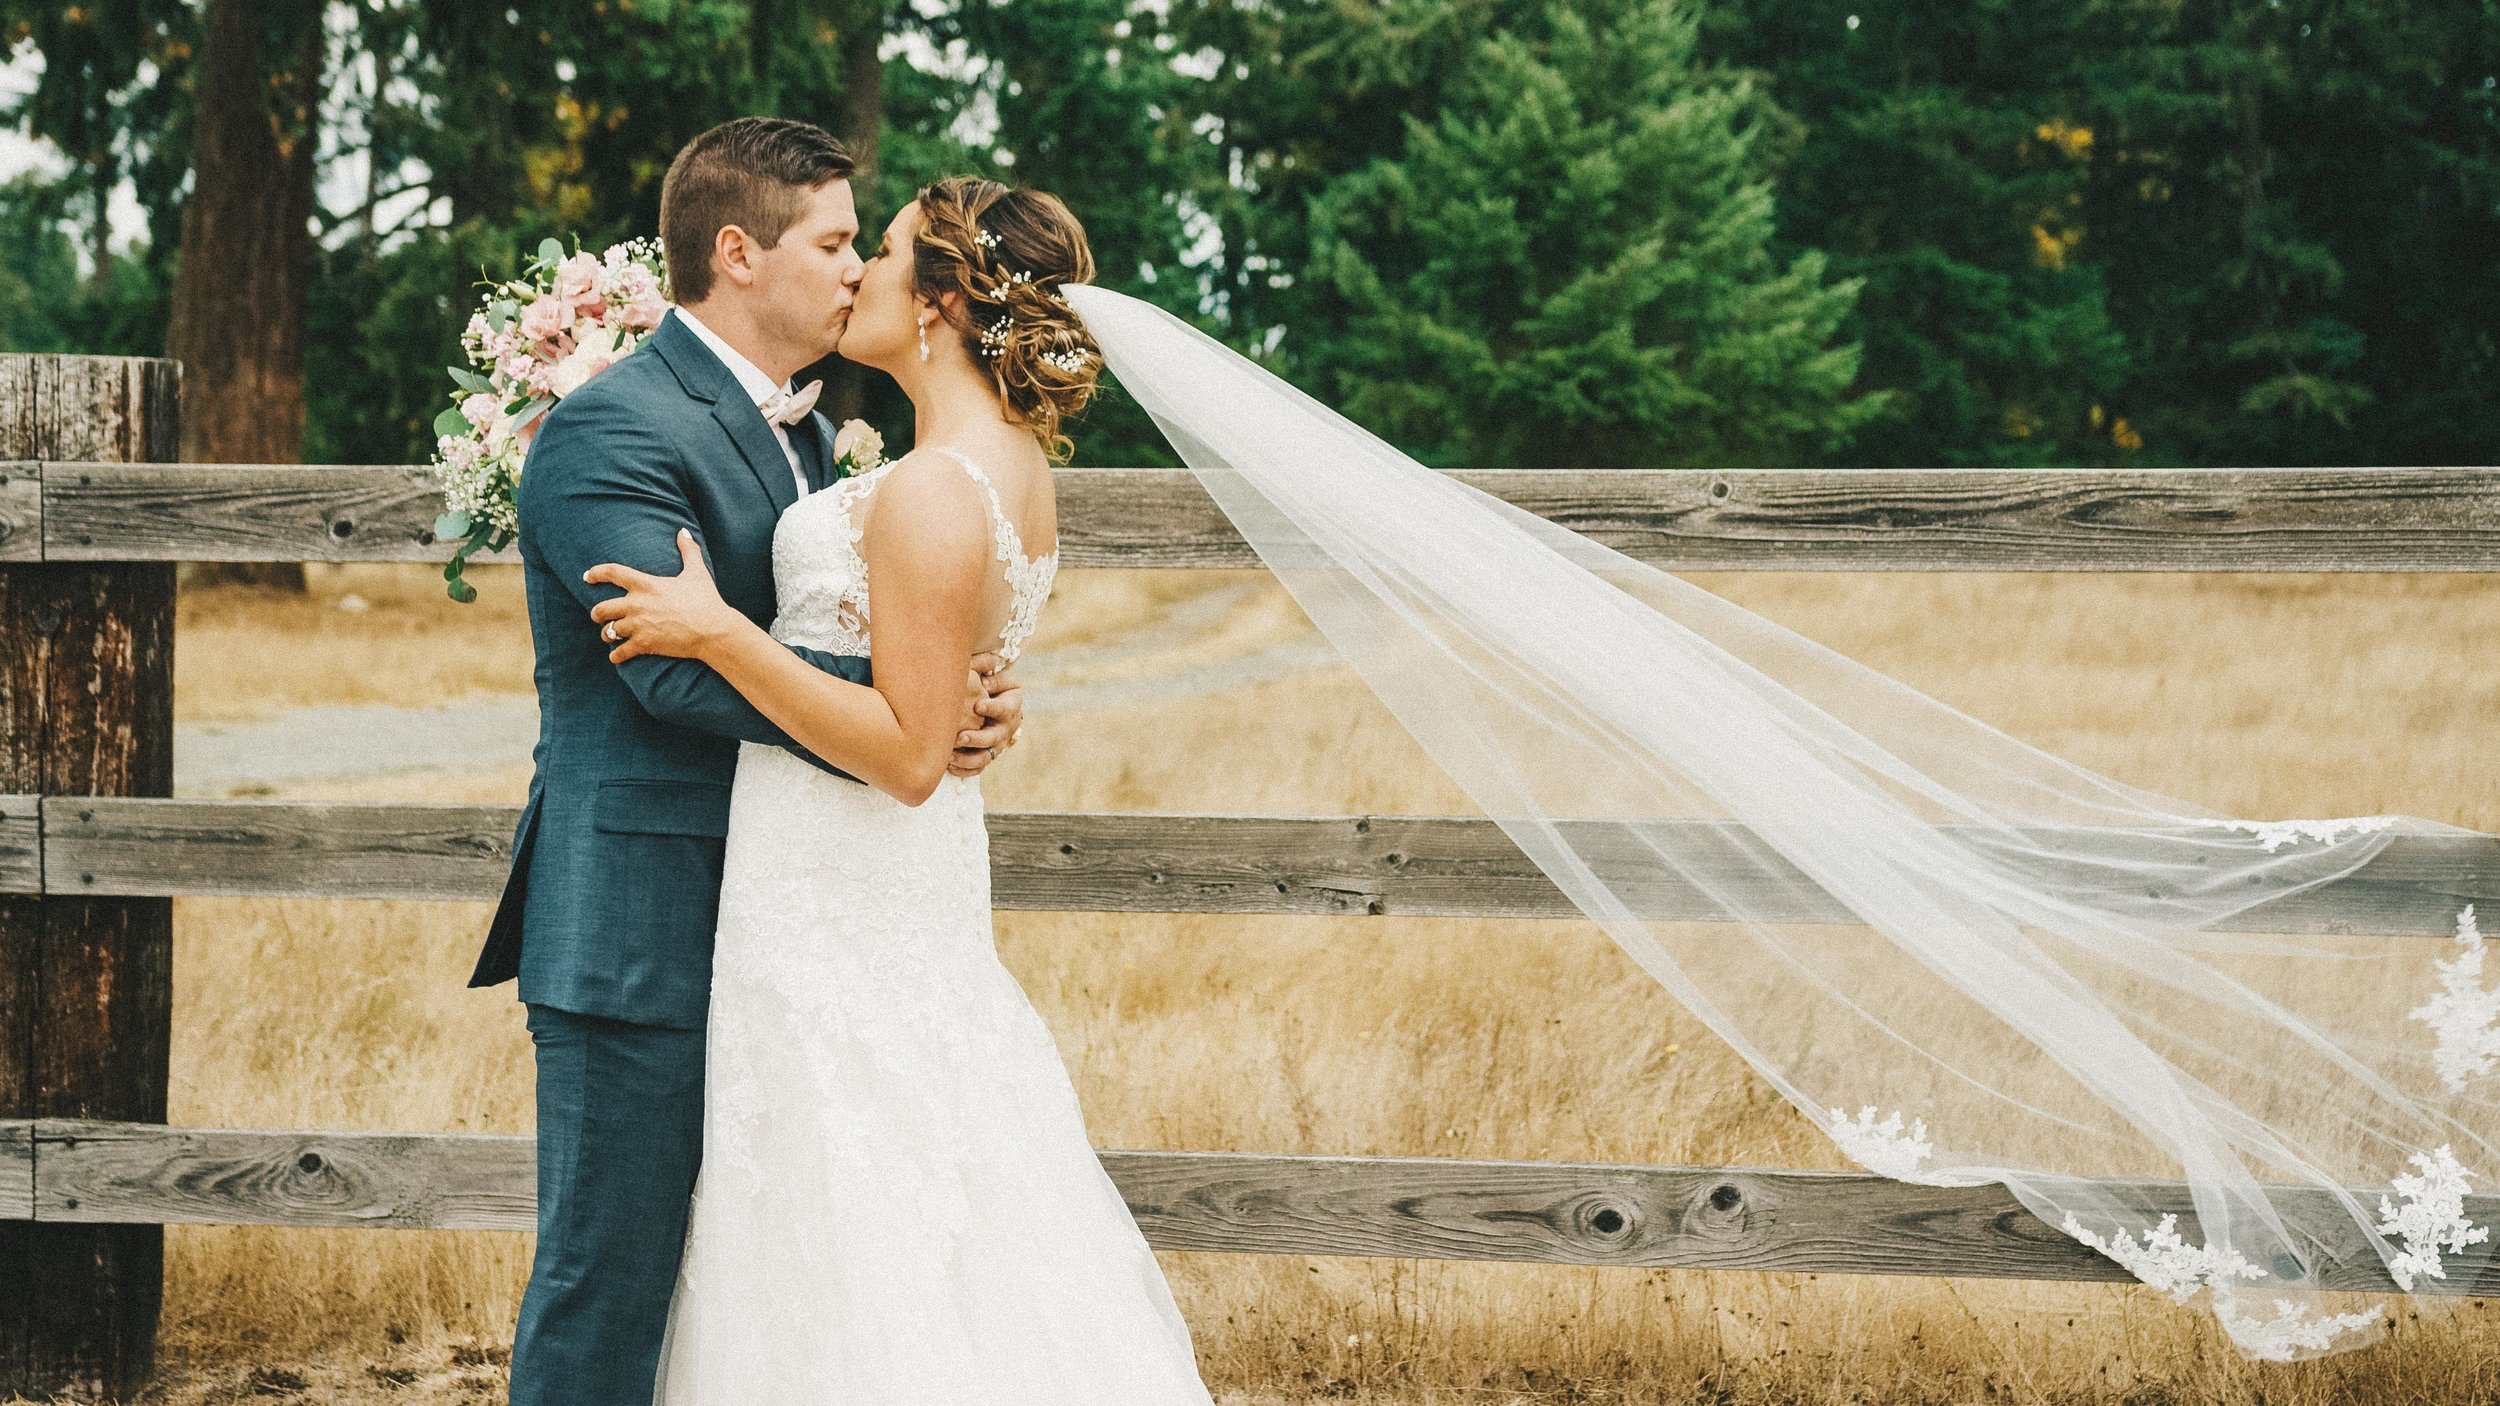 Kaitie&Jordan-TheKelleyFarmWedding-NewlyFilms-16x9-9.jpg